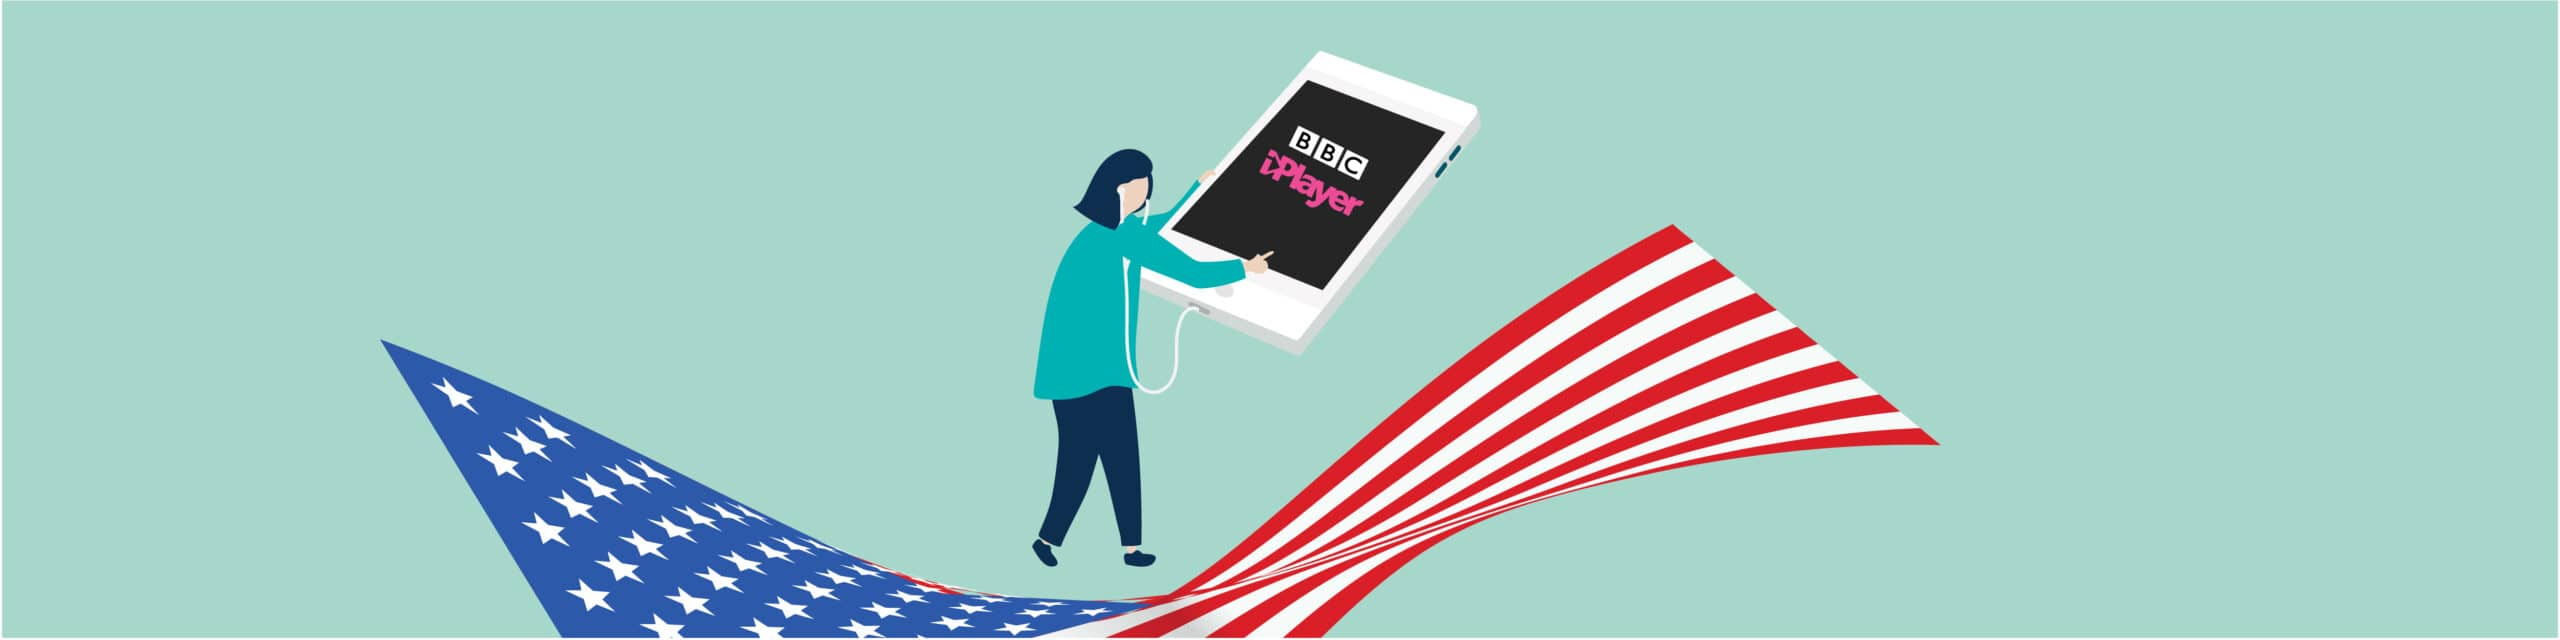 How to watch BBC Iplayer from the US-01